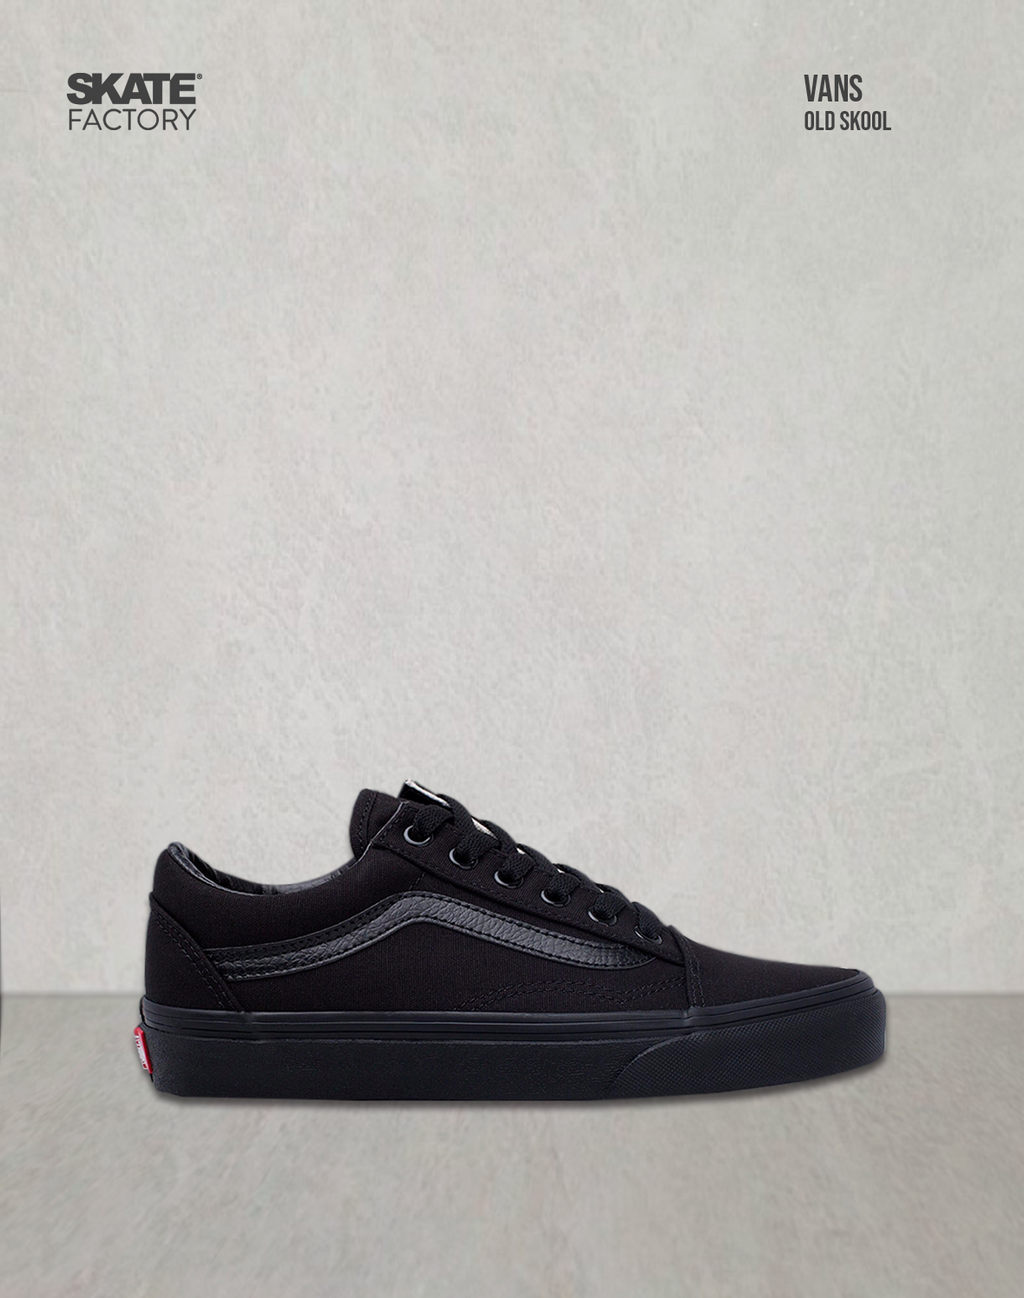 Rebajar Ojalá Martin Luther King Junior  VANS TENIS UNISEX OLD SKOOL NEGRO – Skate Factory